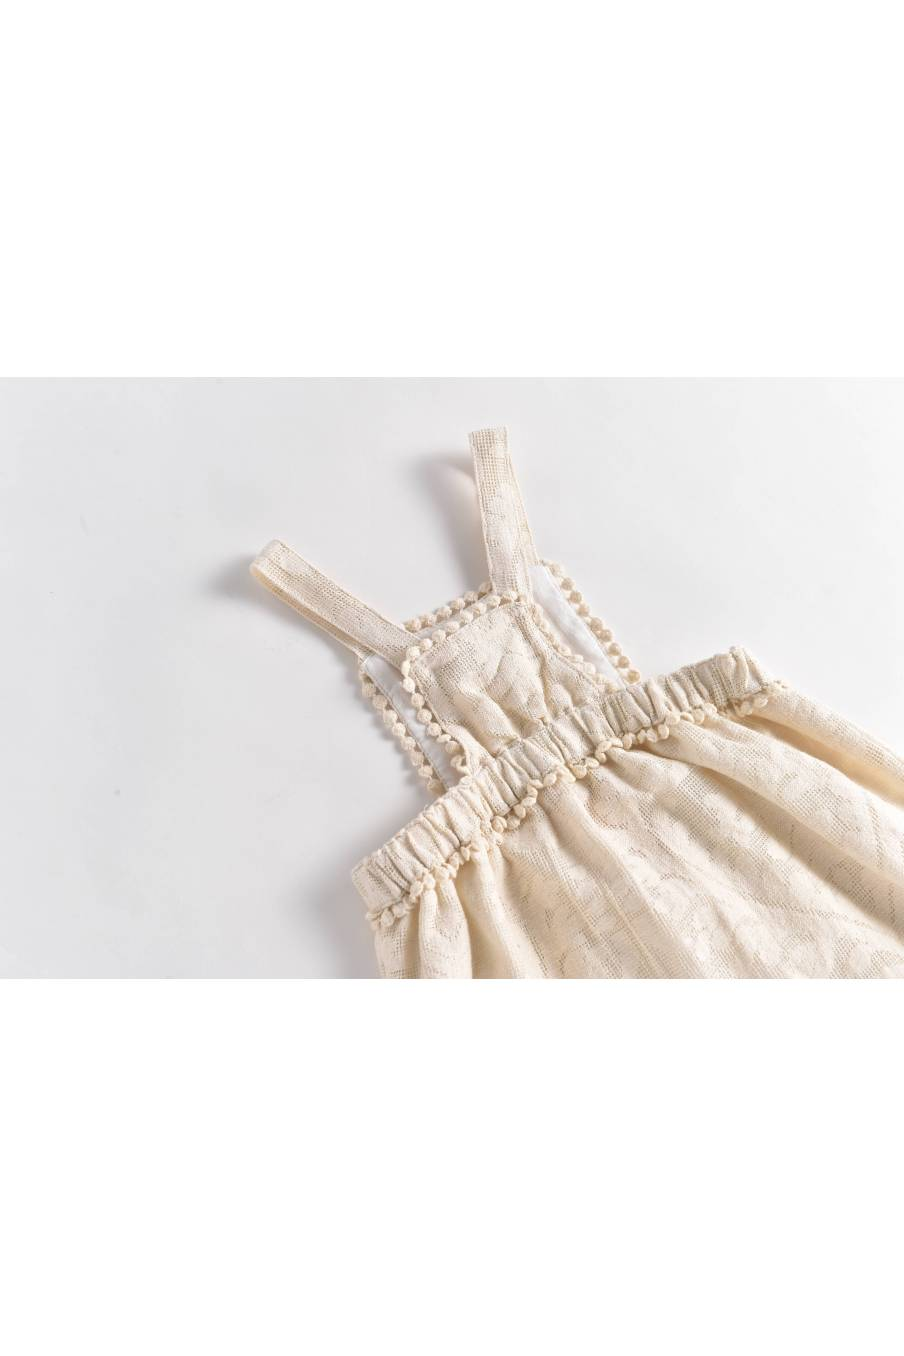 Overalls Bacalar Cream Baroque Lace